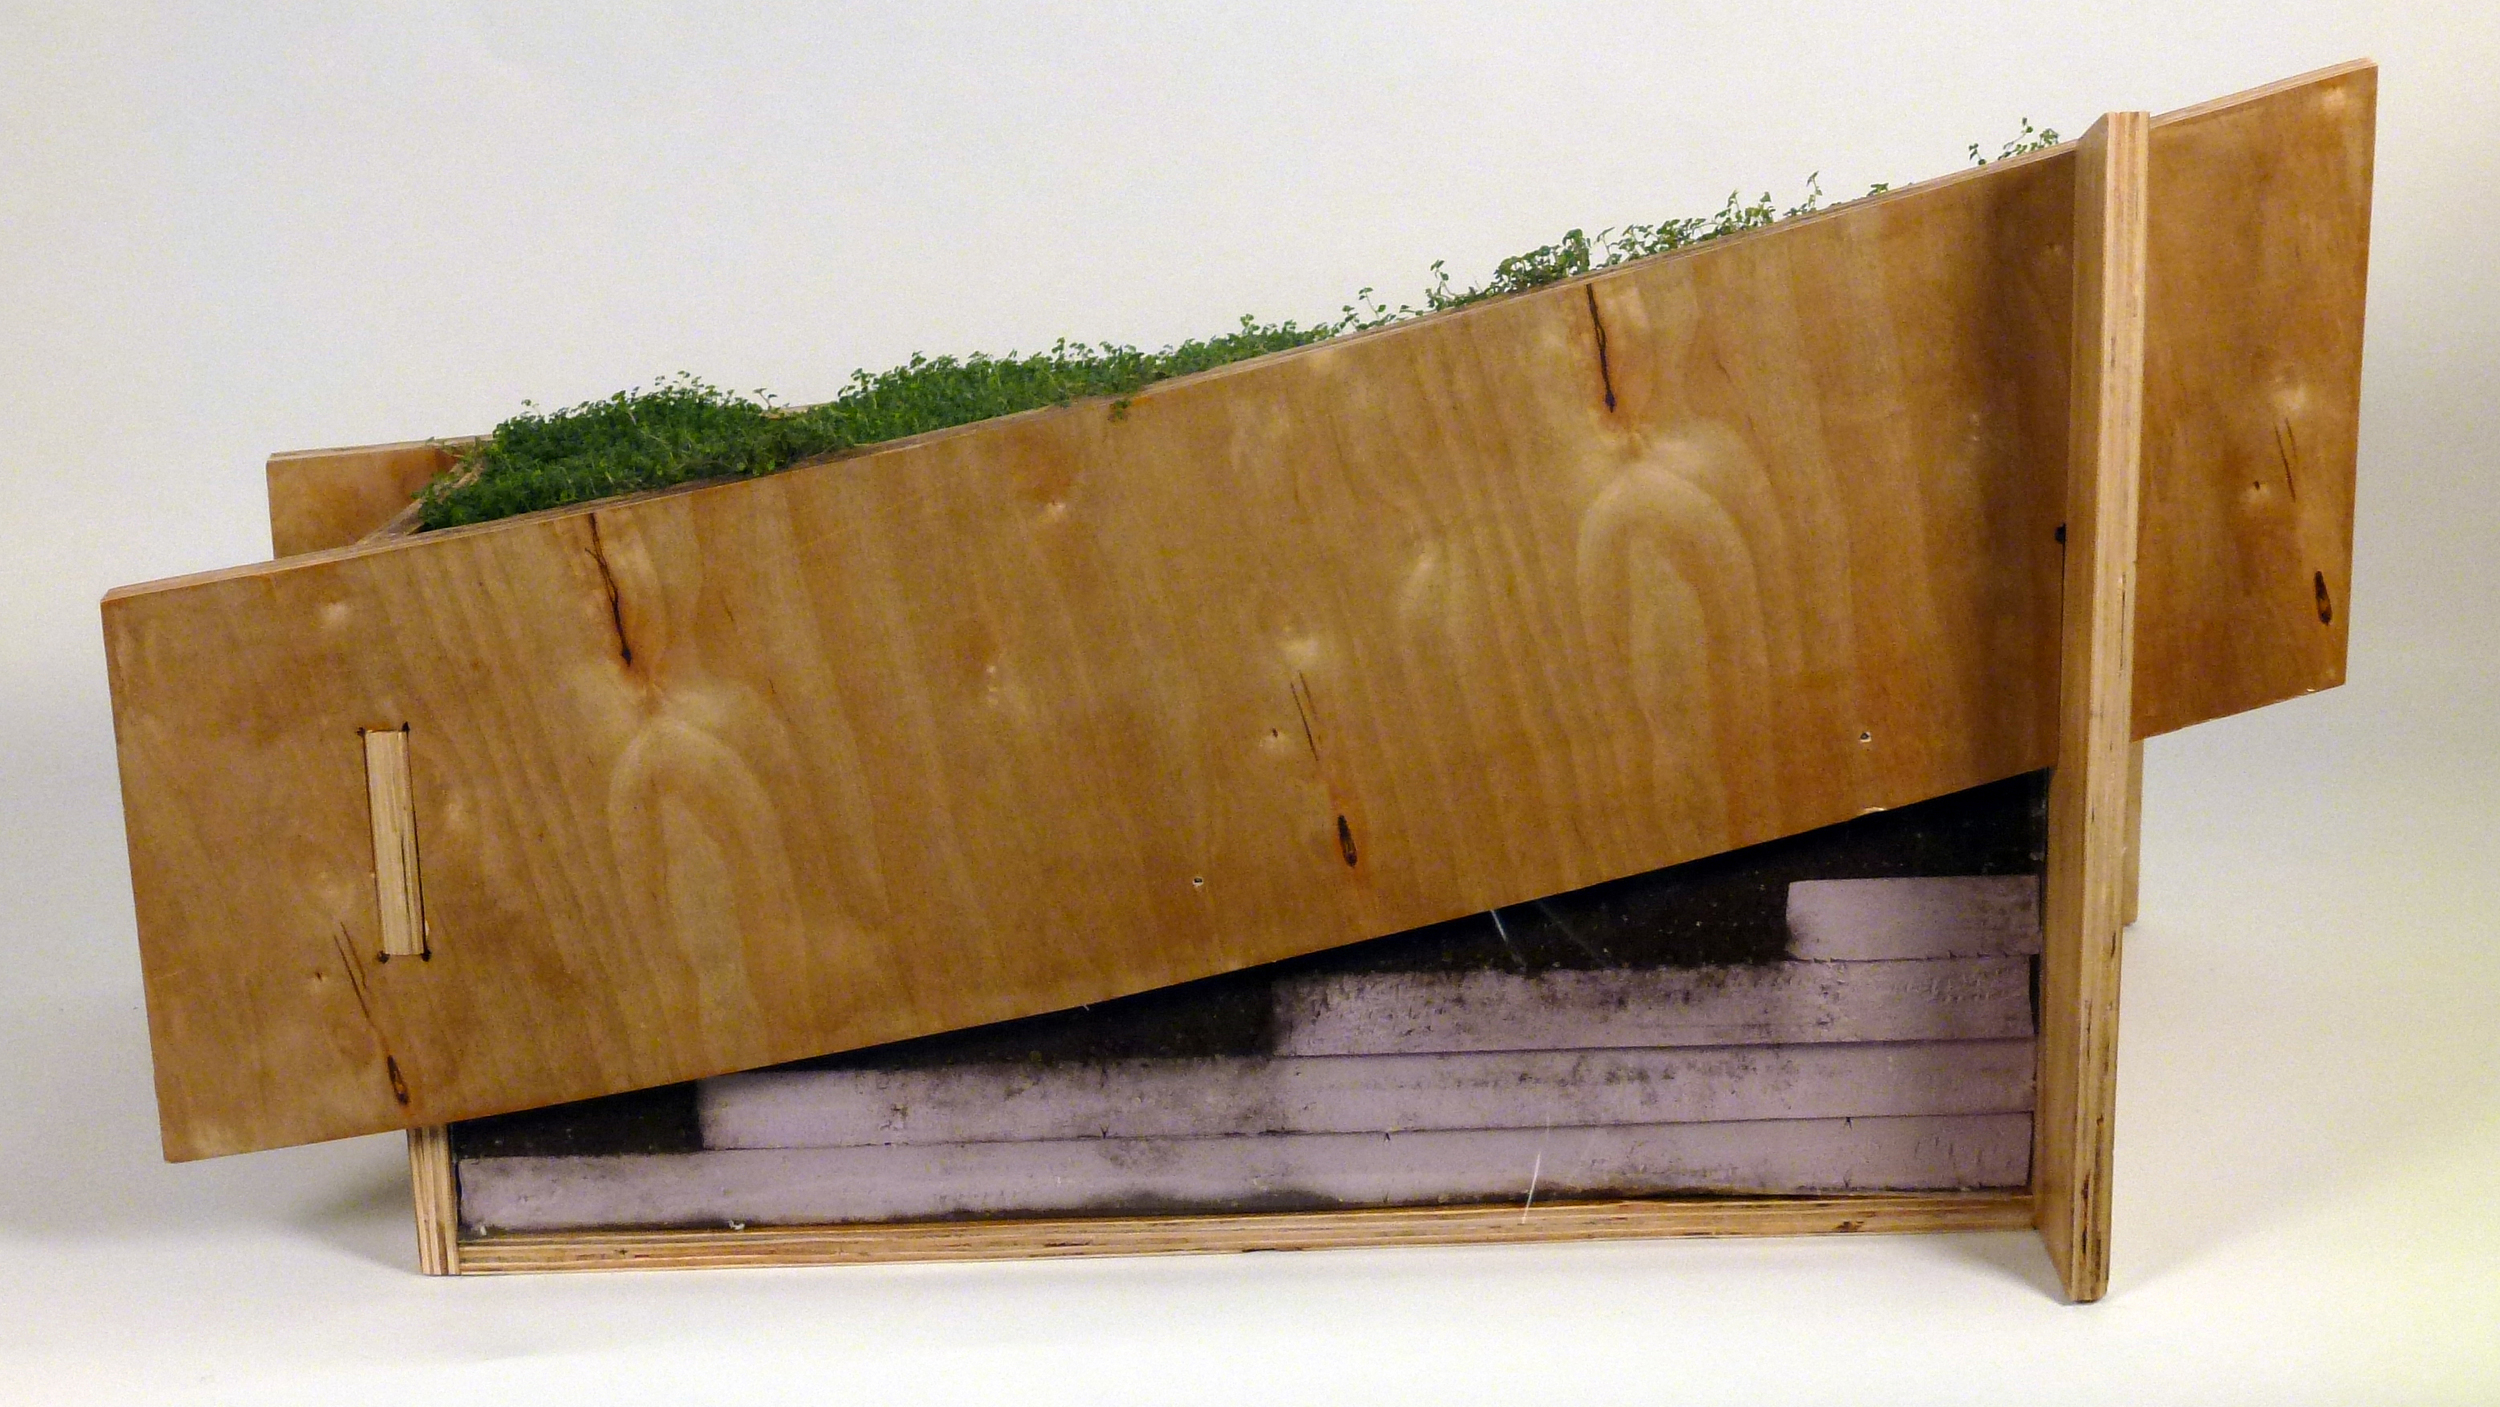 Full-scale prototype of structural joinery and landscape assembly